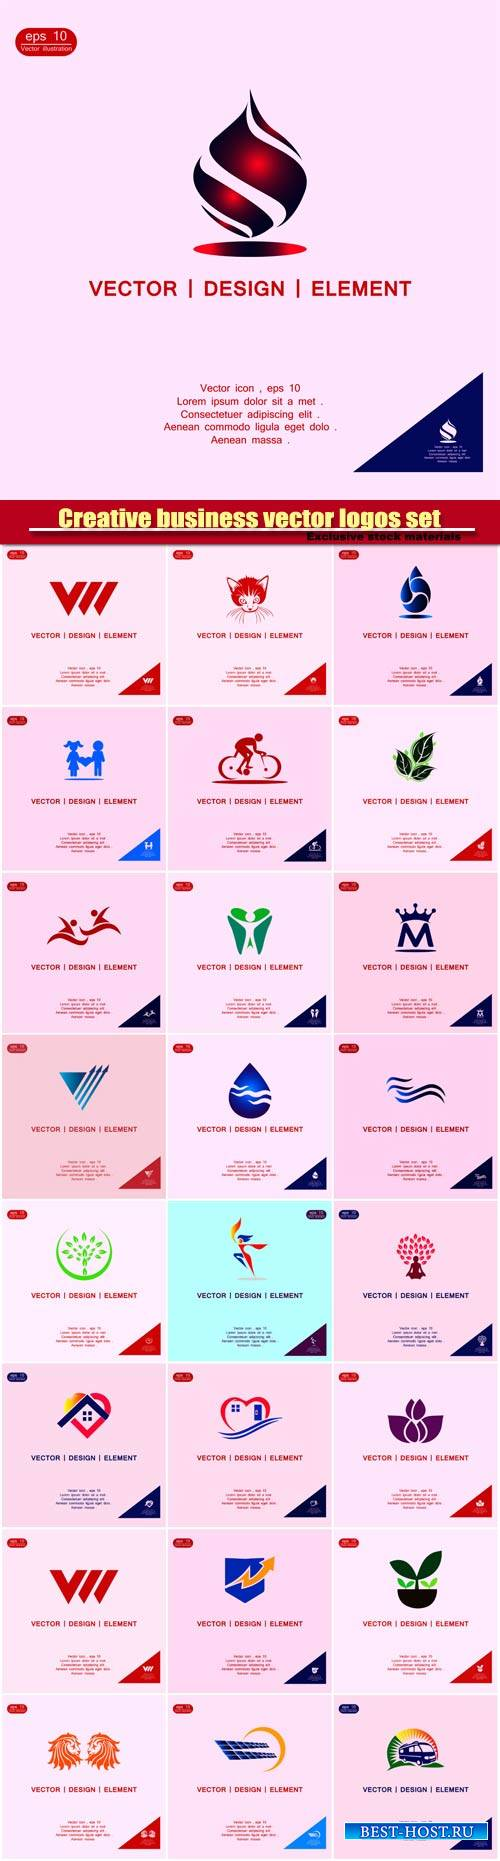 Creative business vector logos set templates